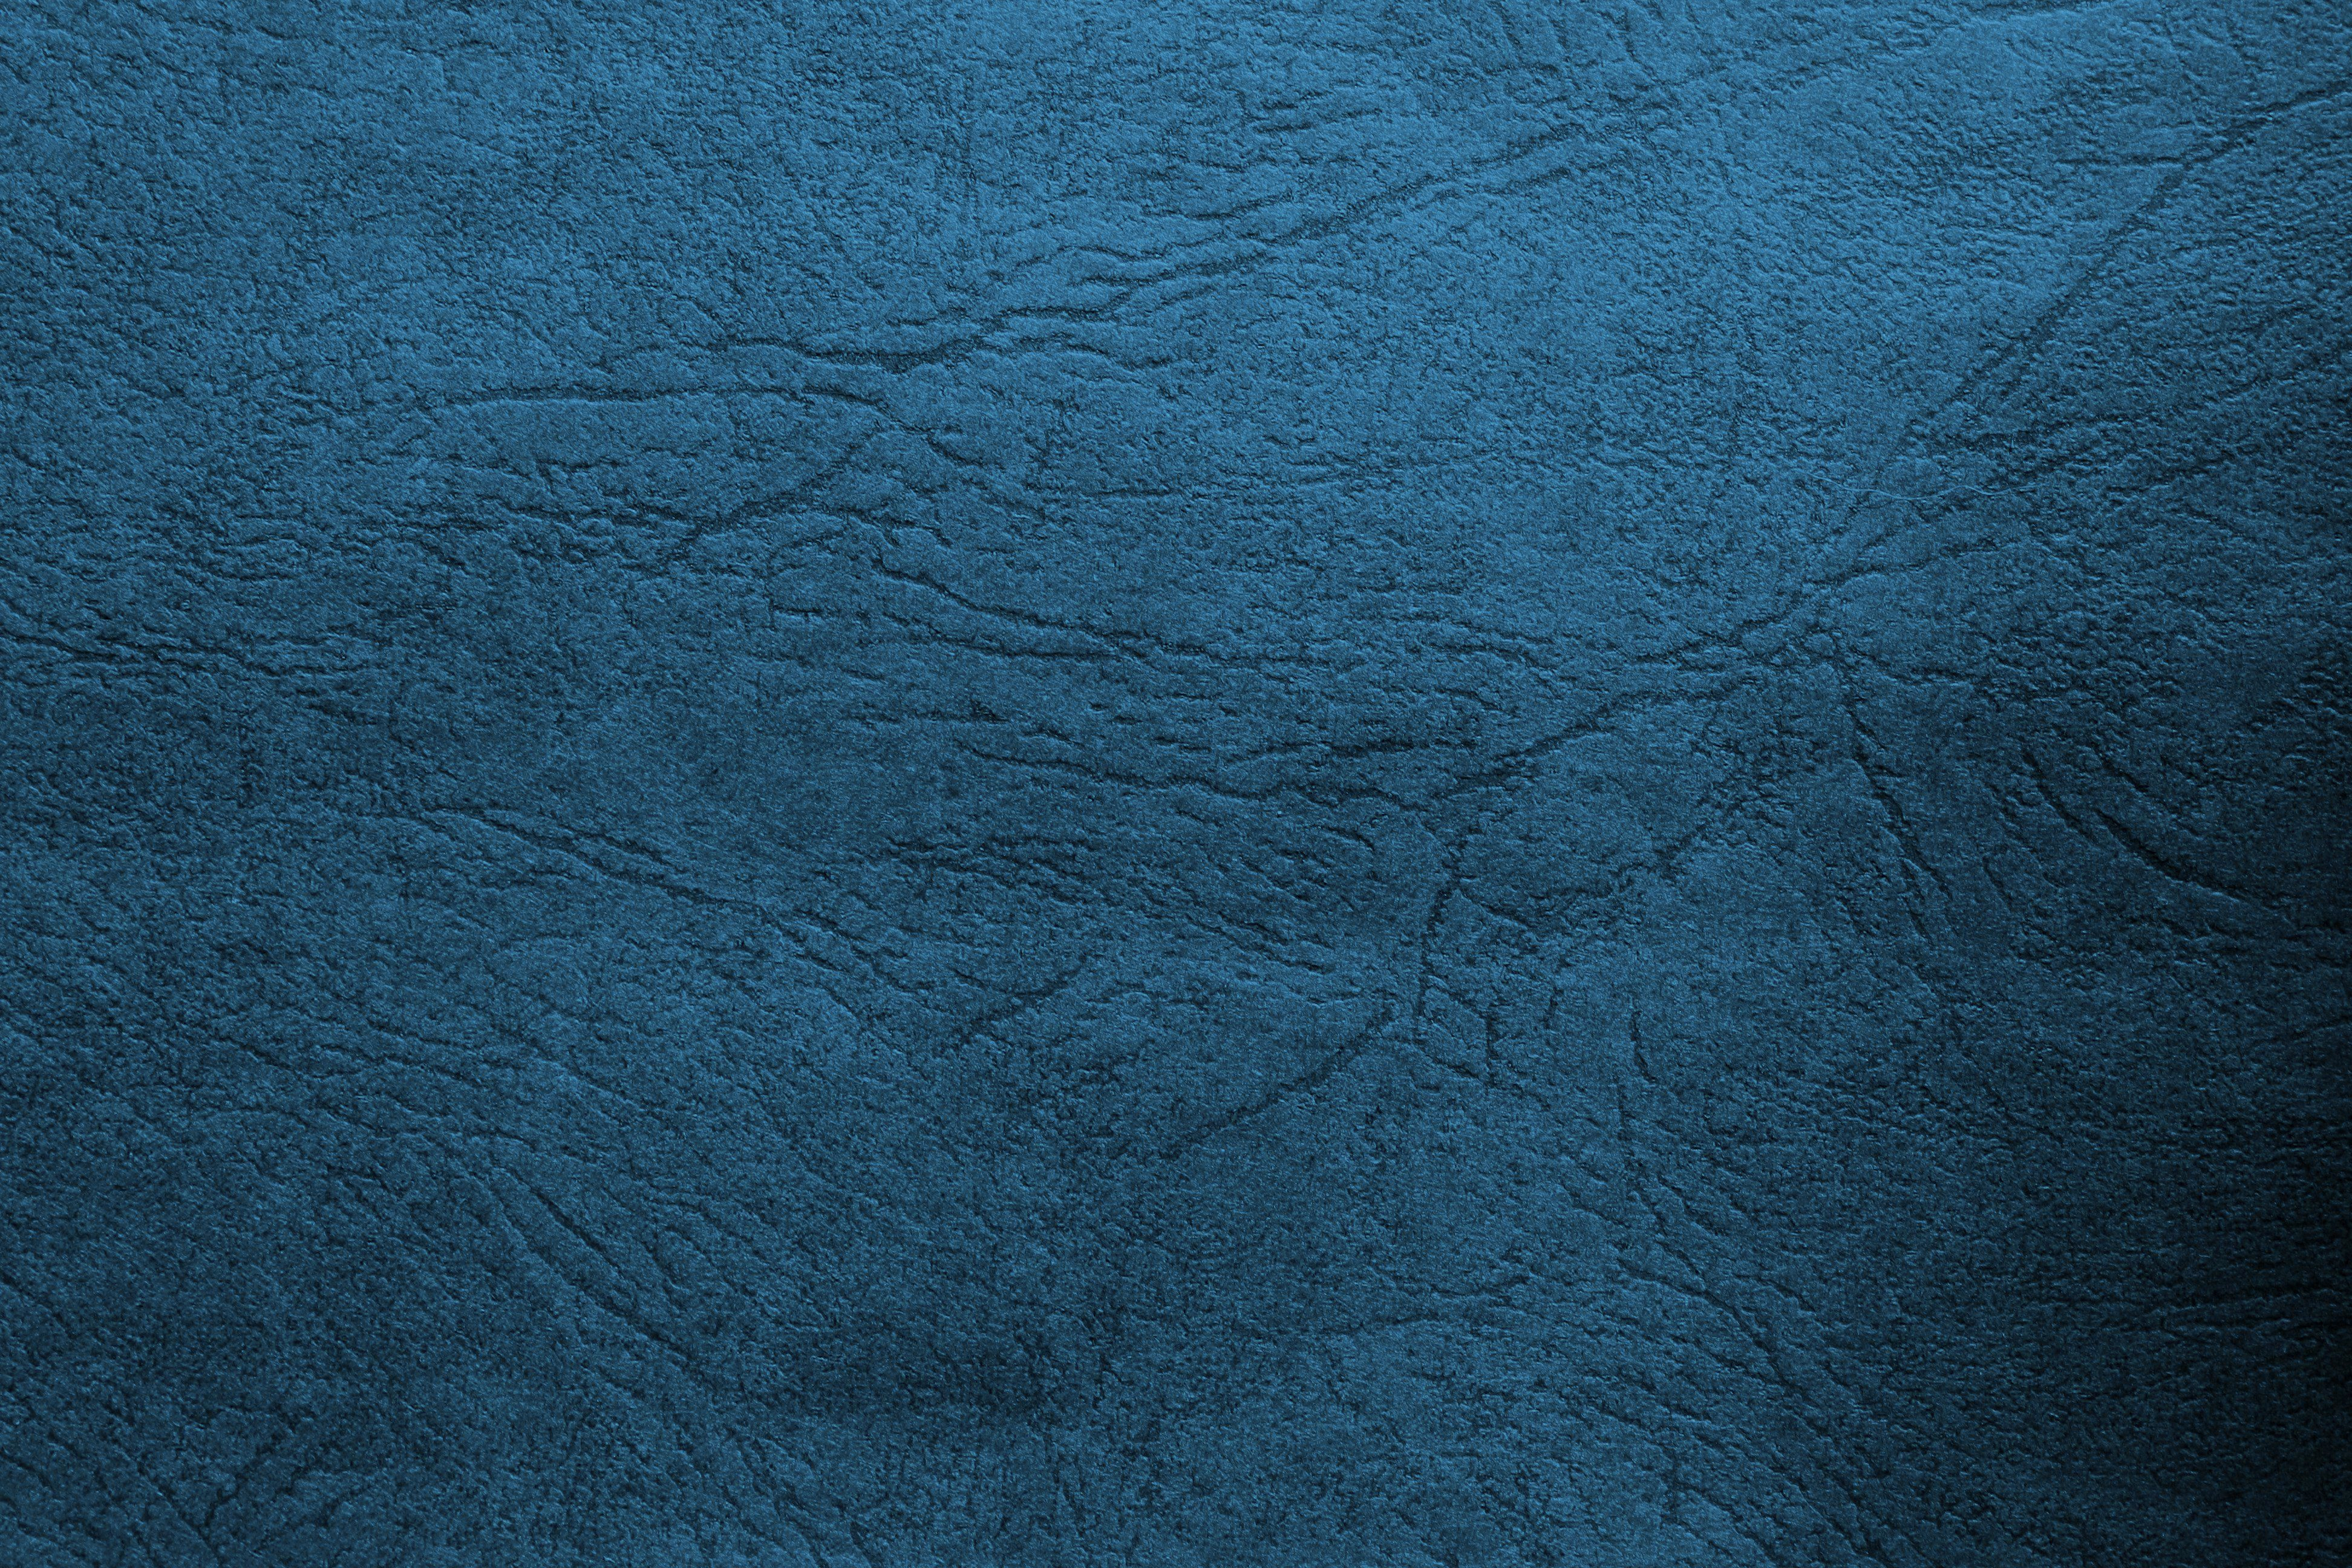 Light Blue Leather Texture Picture Free Photograph Photos Public